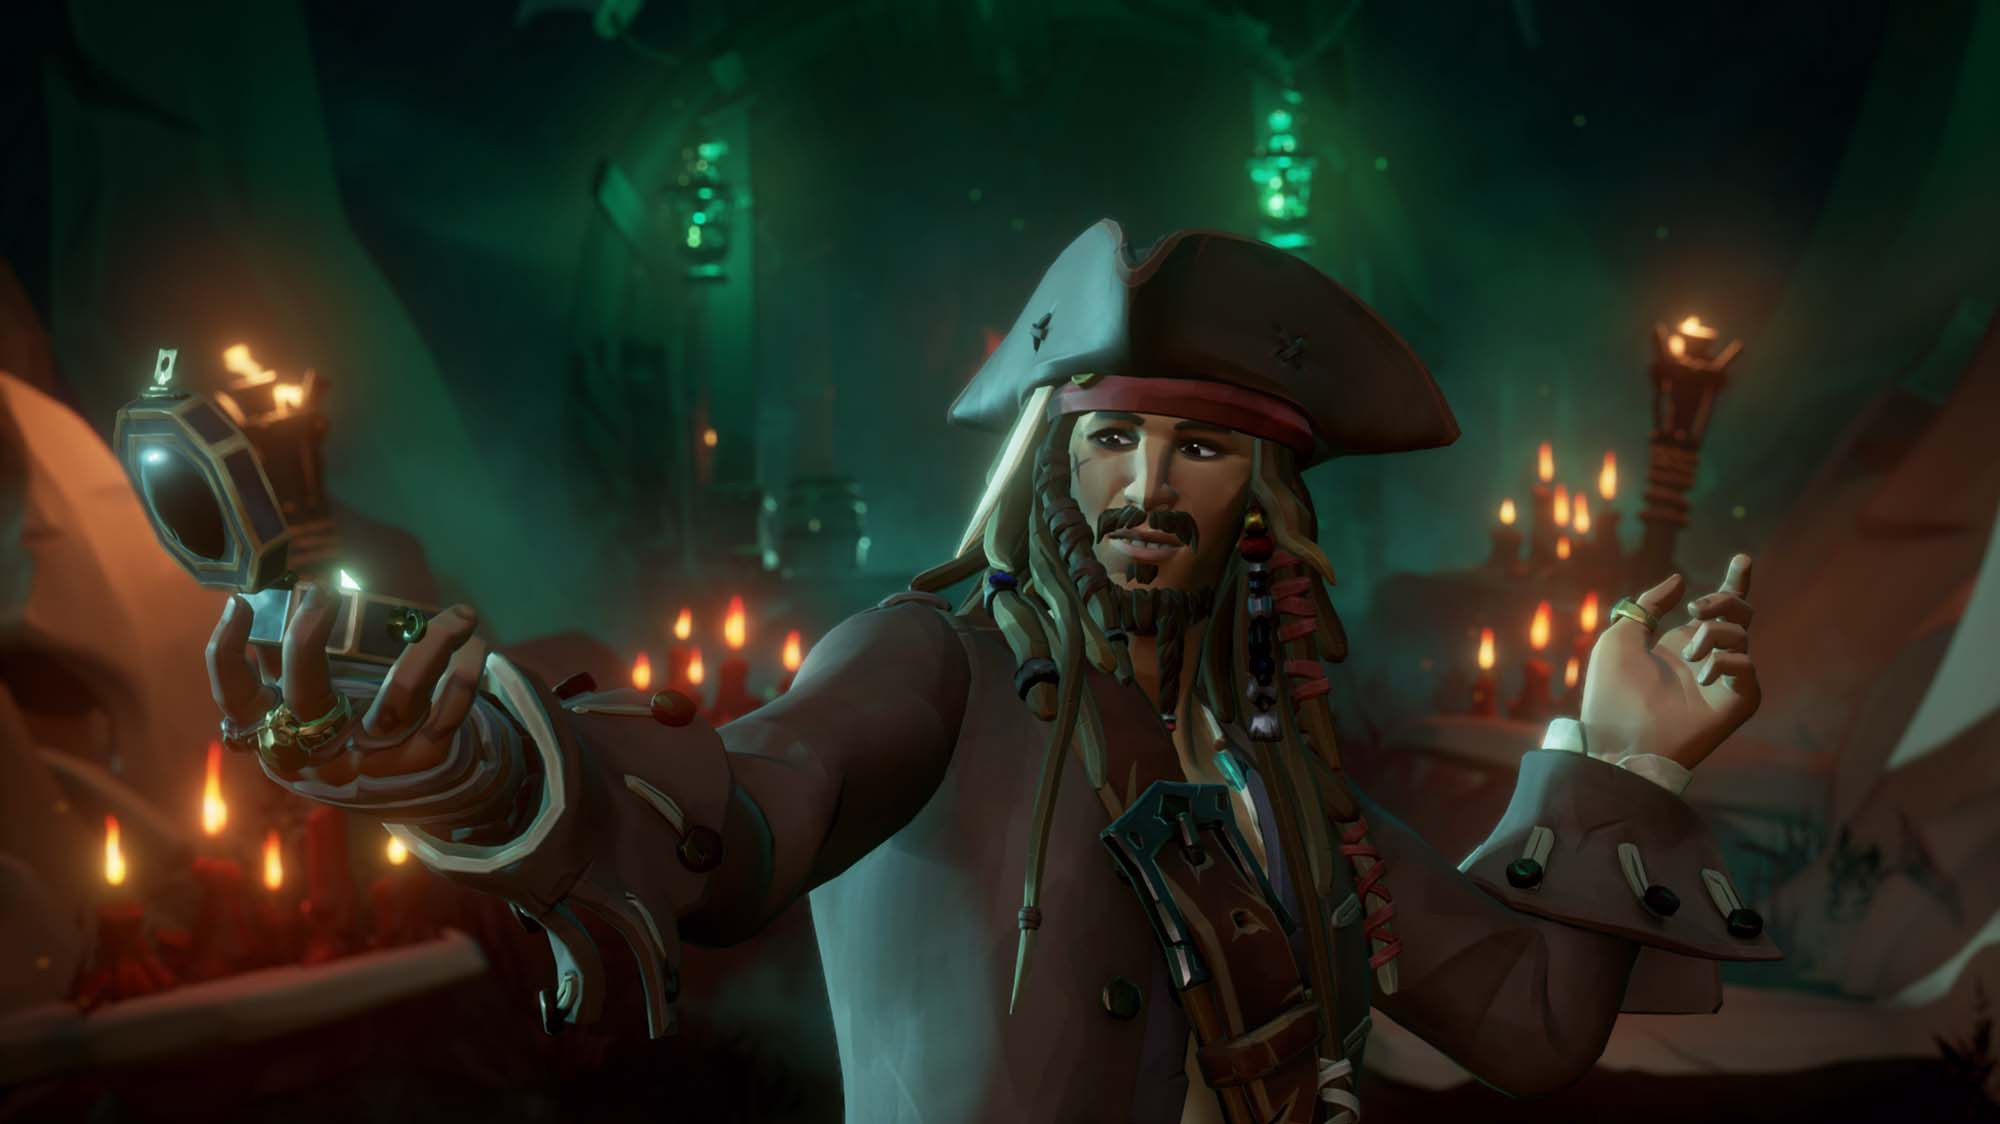 Jack Sparrow in Sea of Thieves